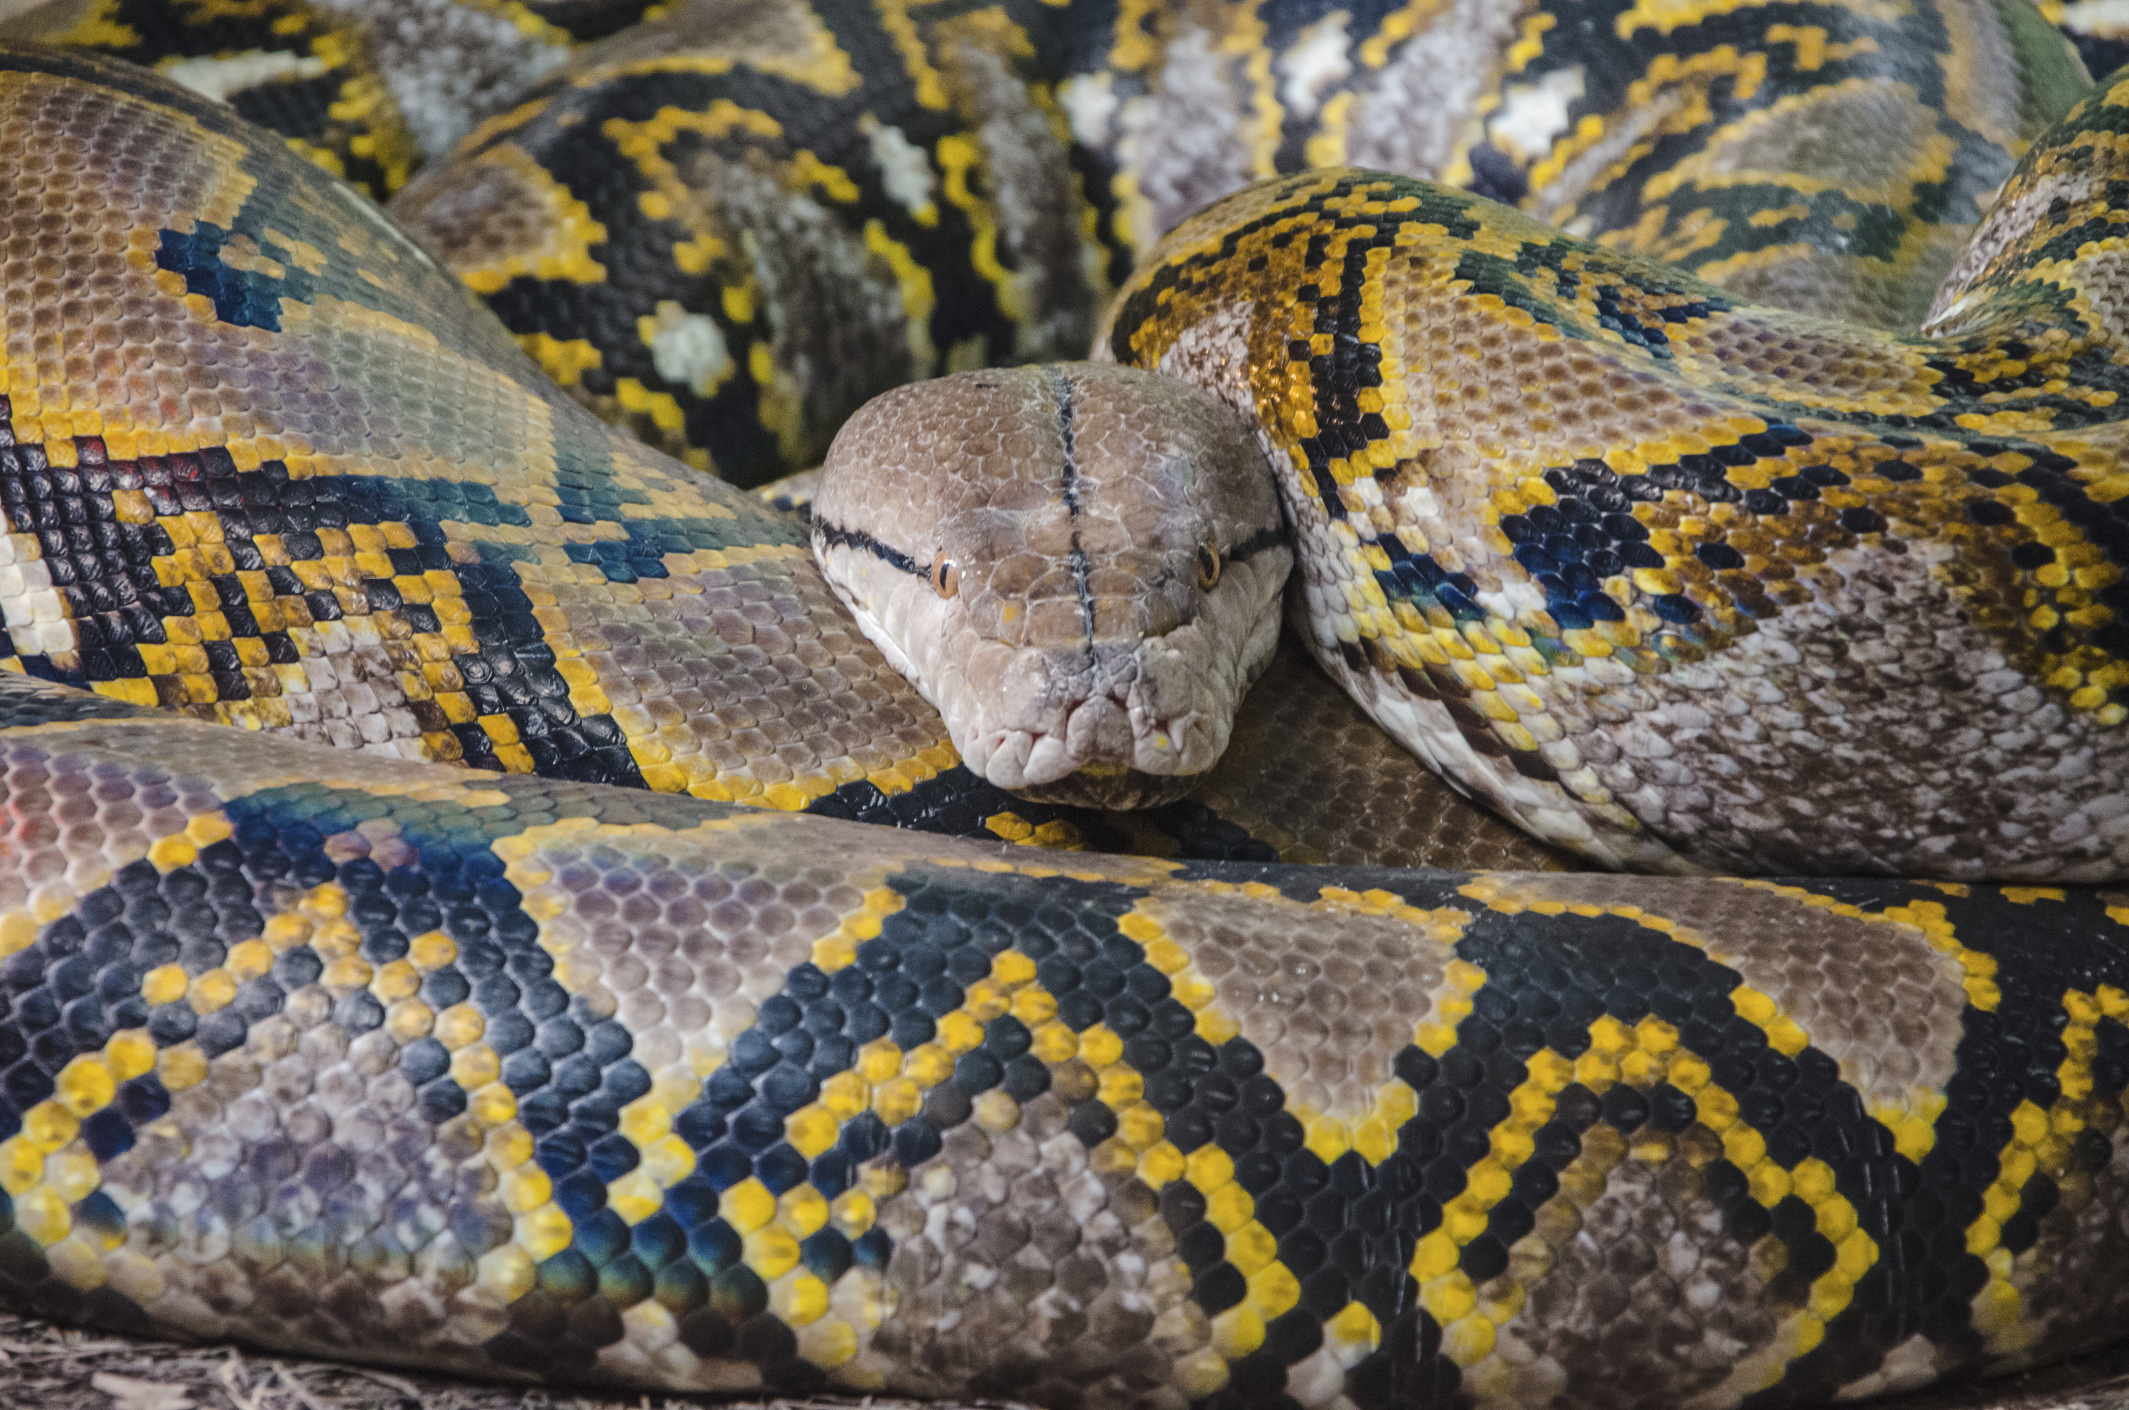 A python can use its unique patterned skin to evade predators.